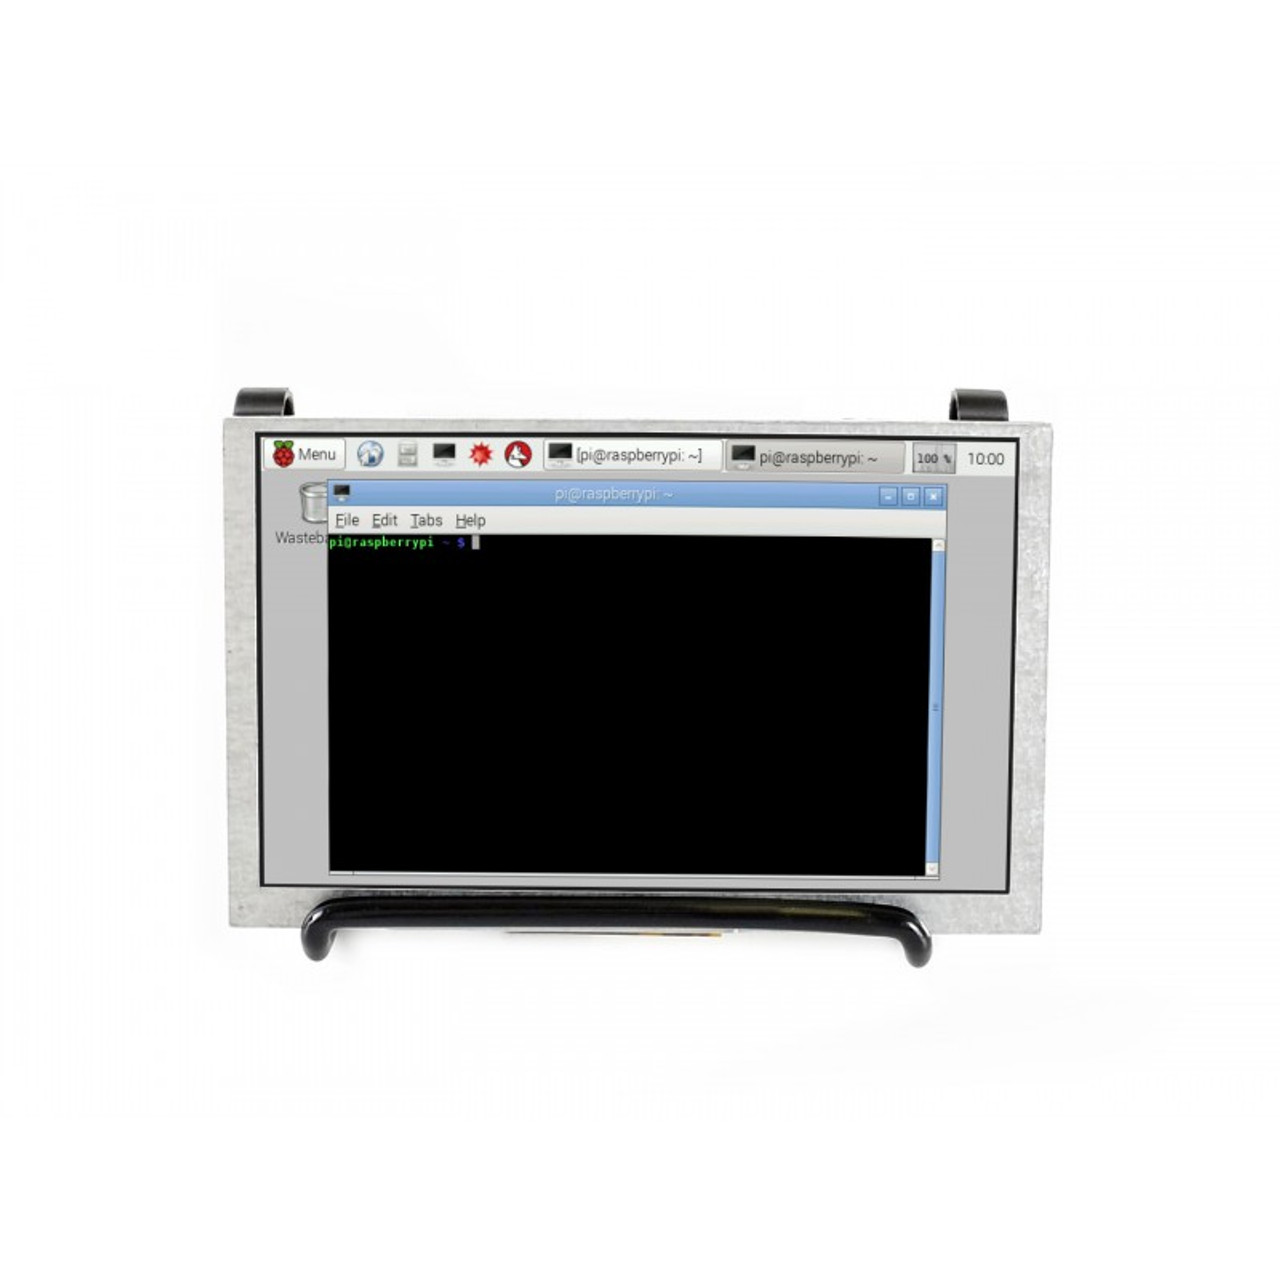 5inch IPS Display for Raspberry Pi, DPI interface, no Touch, 800x480